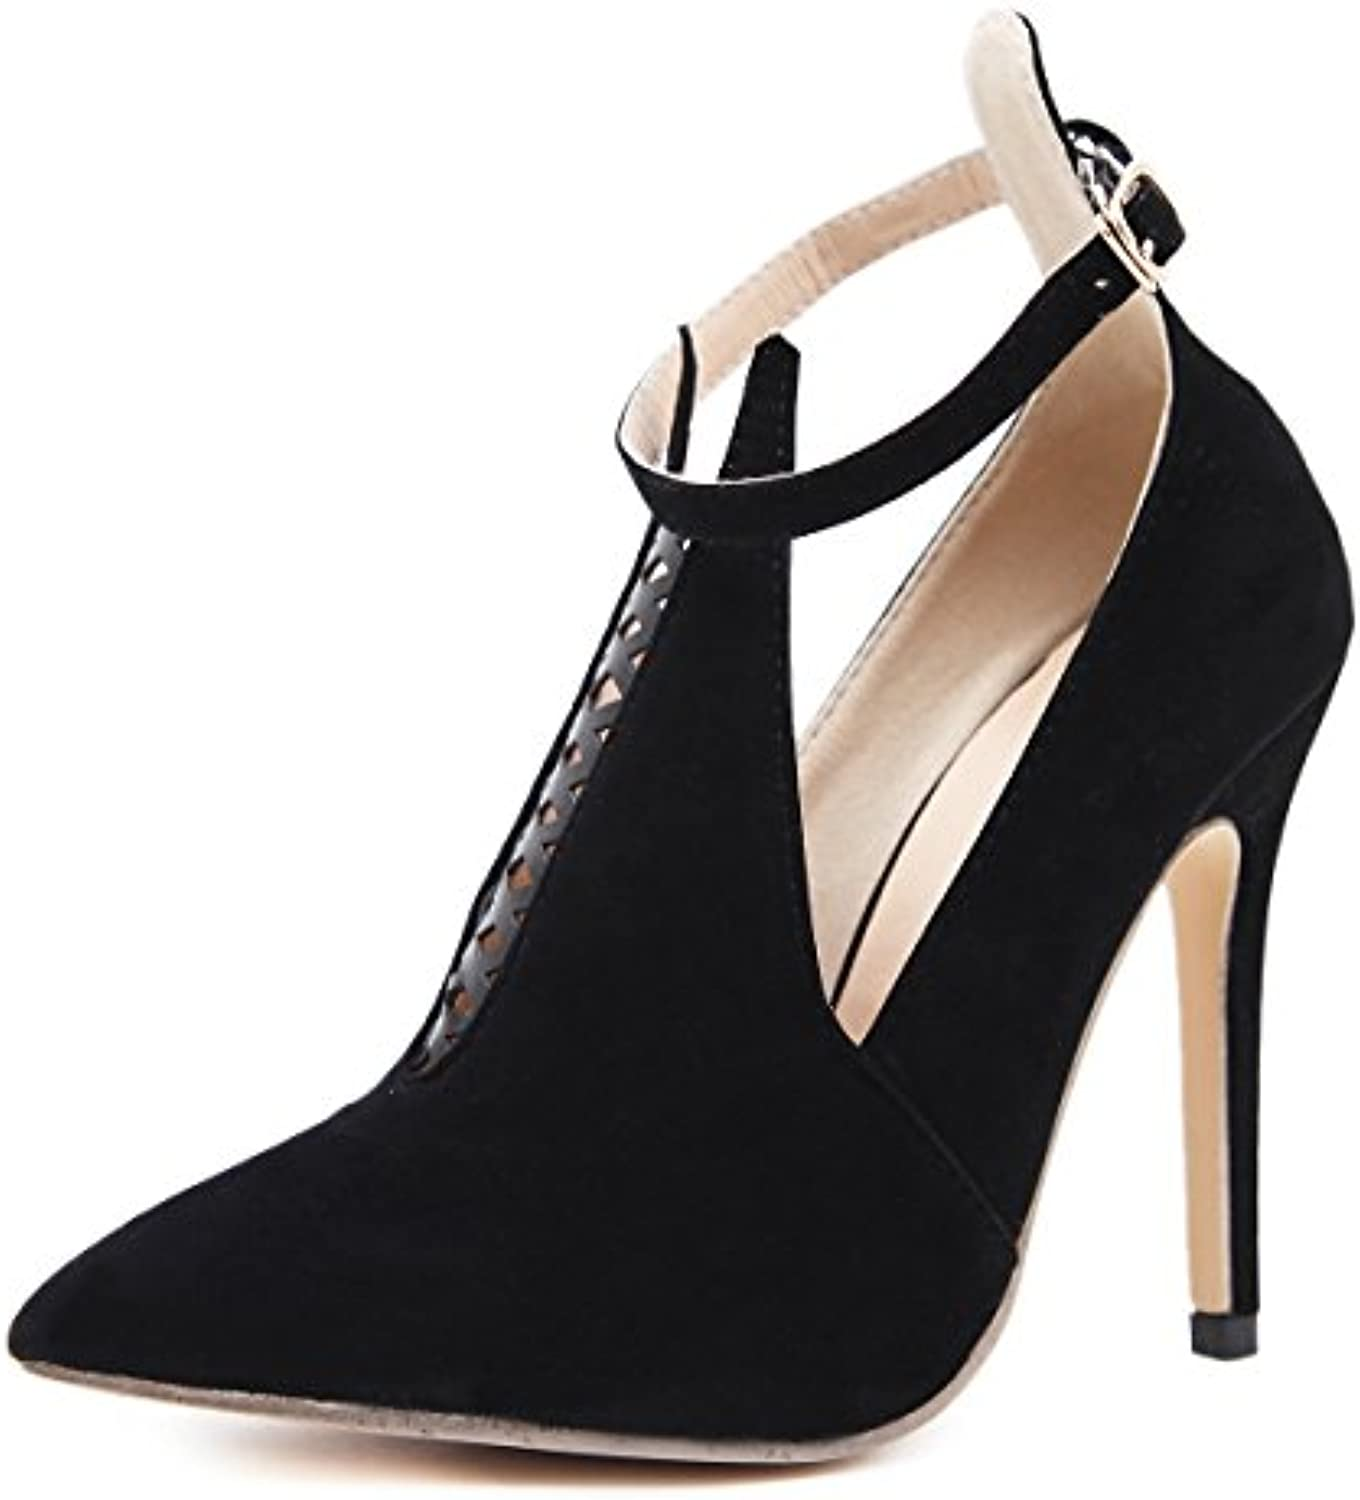 ed088aa62f8 ZHZNVX The new high-heeled sandals early spring spring spring new high  heels fashion tip buckle women s shoes fine with v-high-heel.